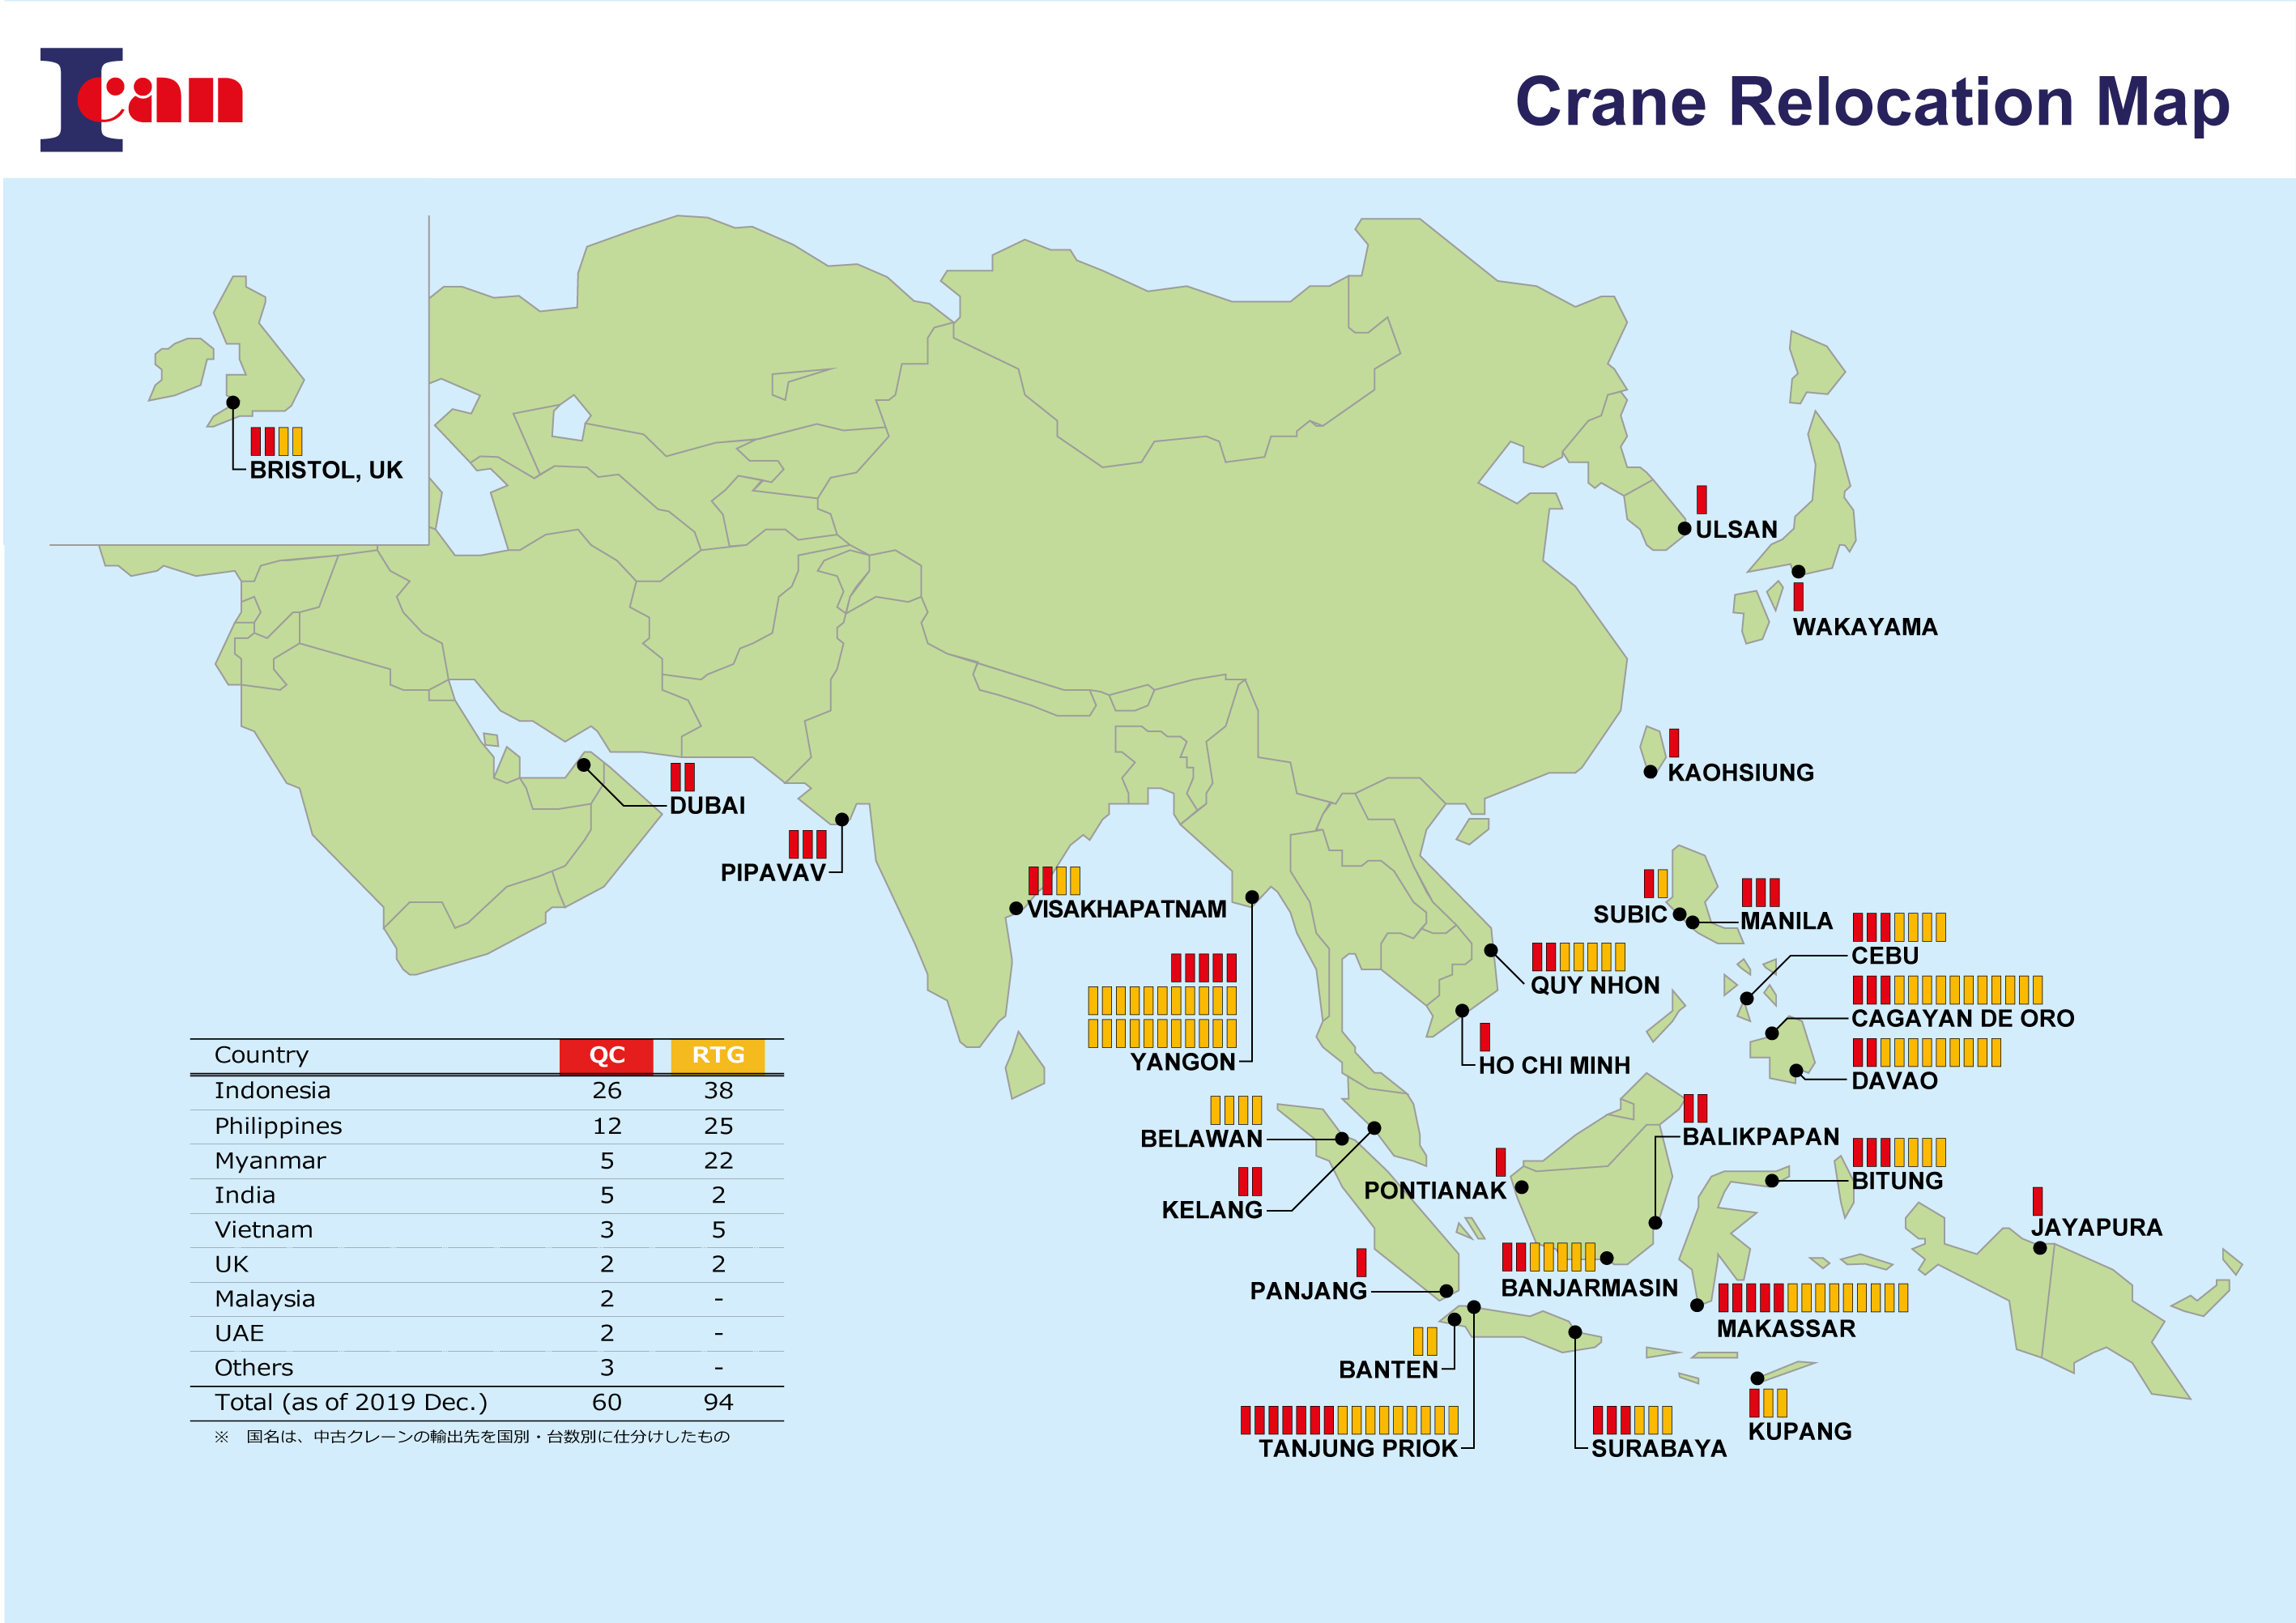 Delivery record of Container cranes and Transfer cranes as of  December 2019